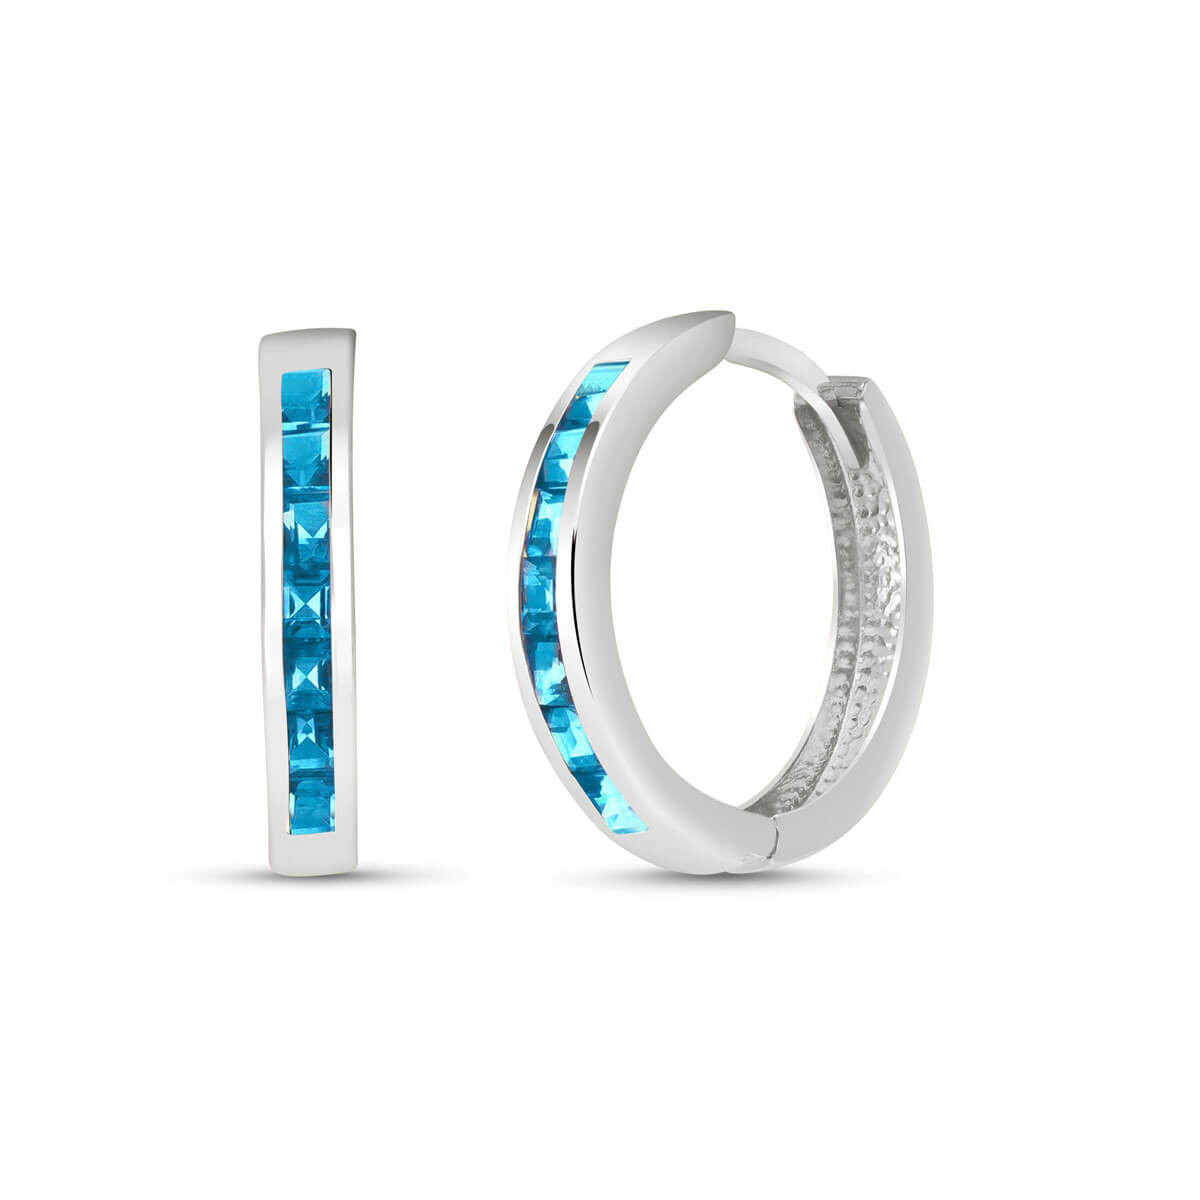 Blue Topaz Huggie Earrings 1.85 ctw in 9ct White Gold